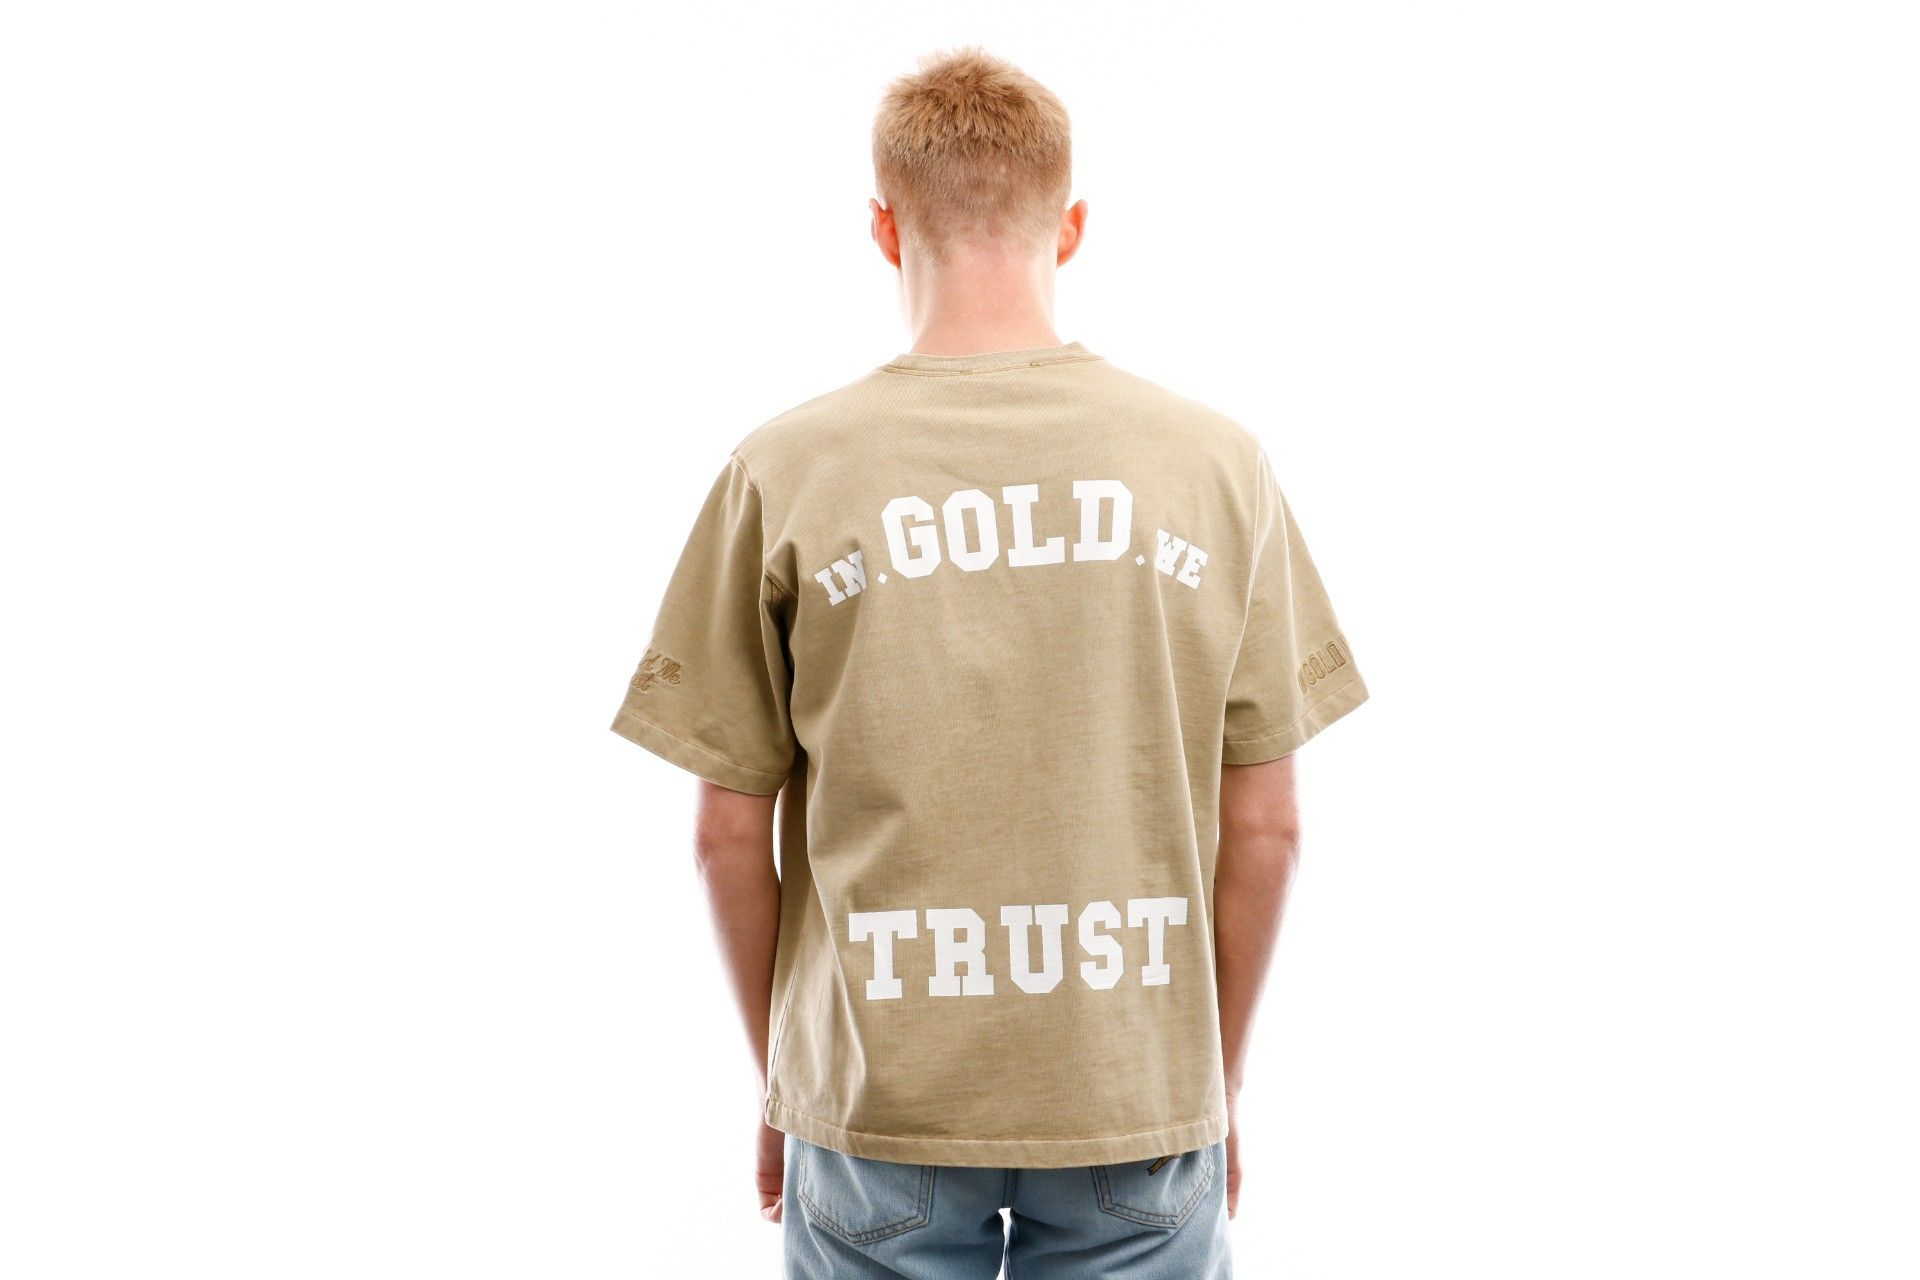 Afbeelding van In Gold We Trust T Shirt Overside Tee Basic Print Black Print Frond Safari IGWT-003